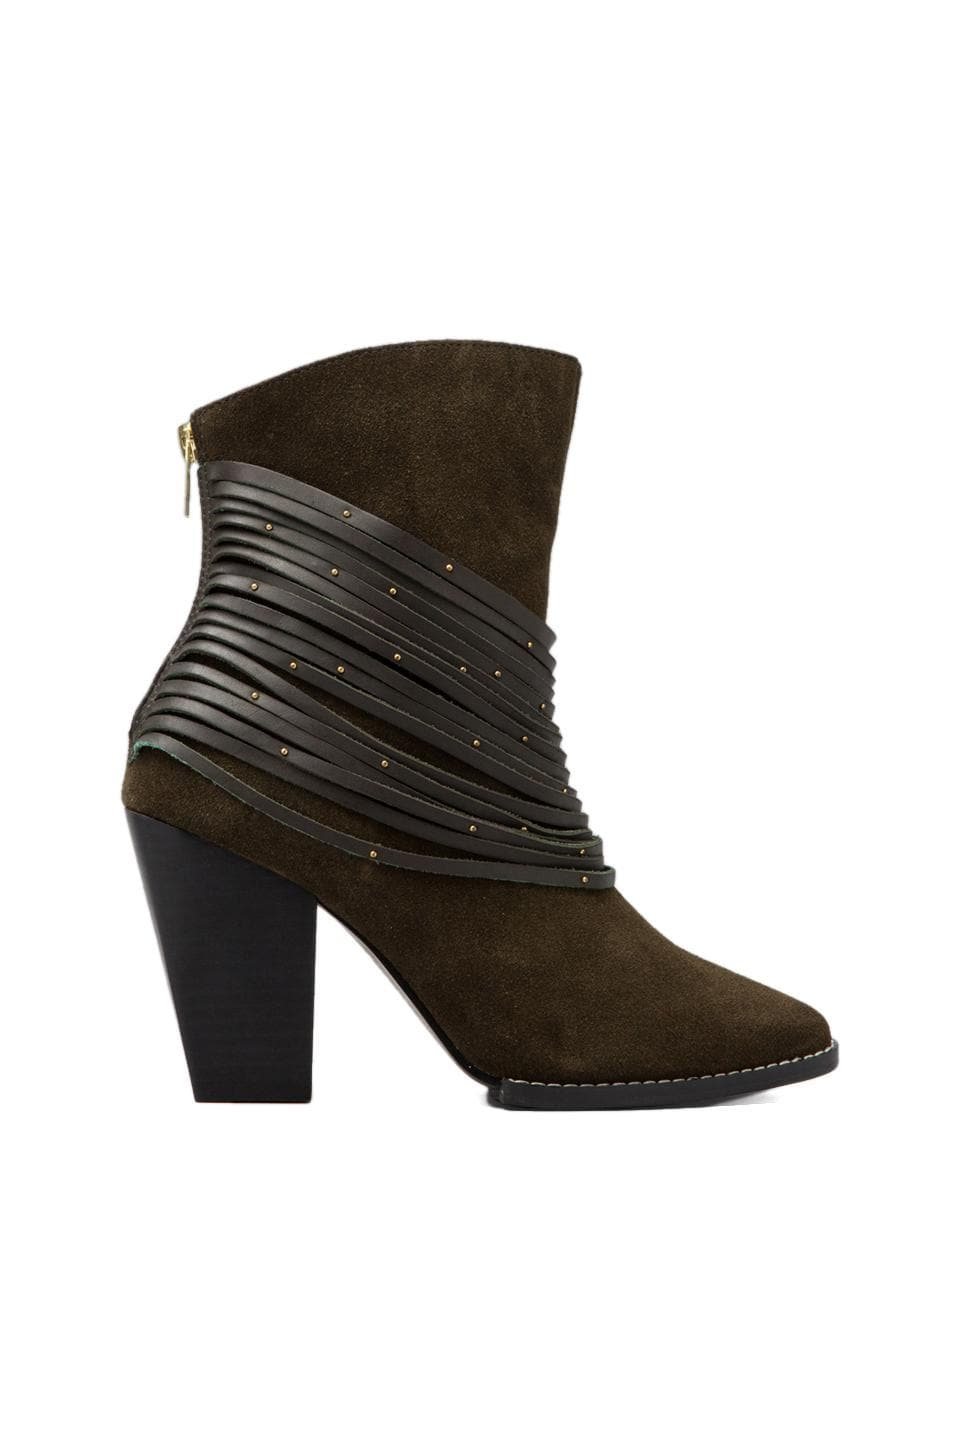 Kelsi Dagger Zena Bootie in Forest Green